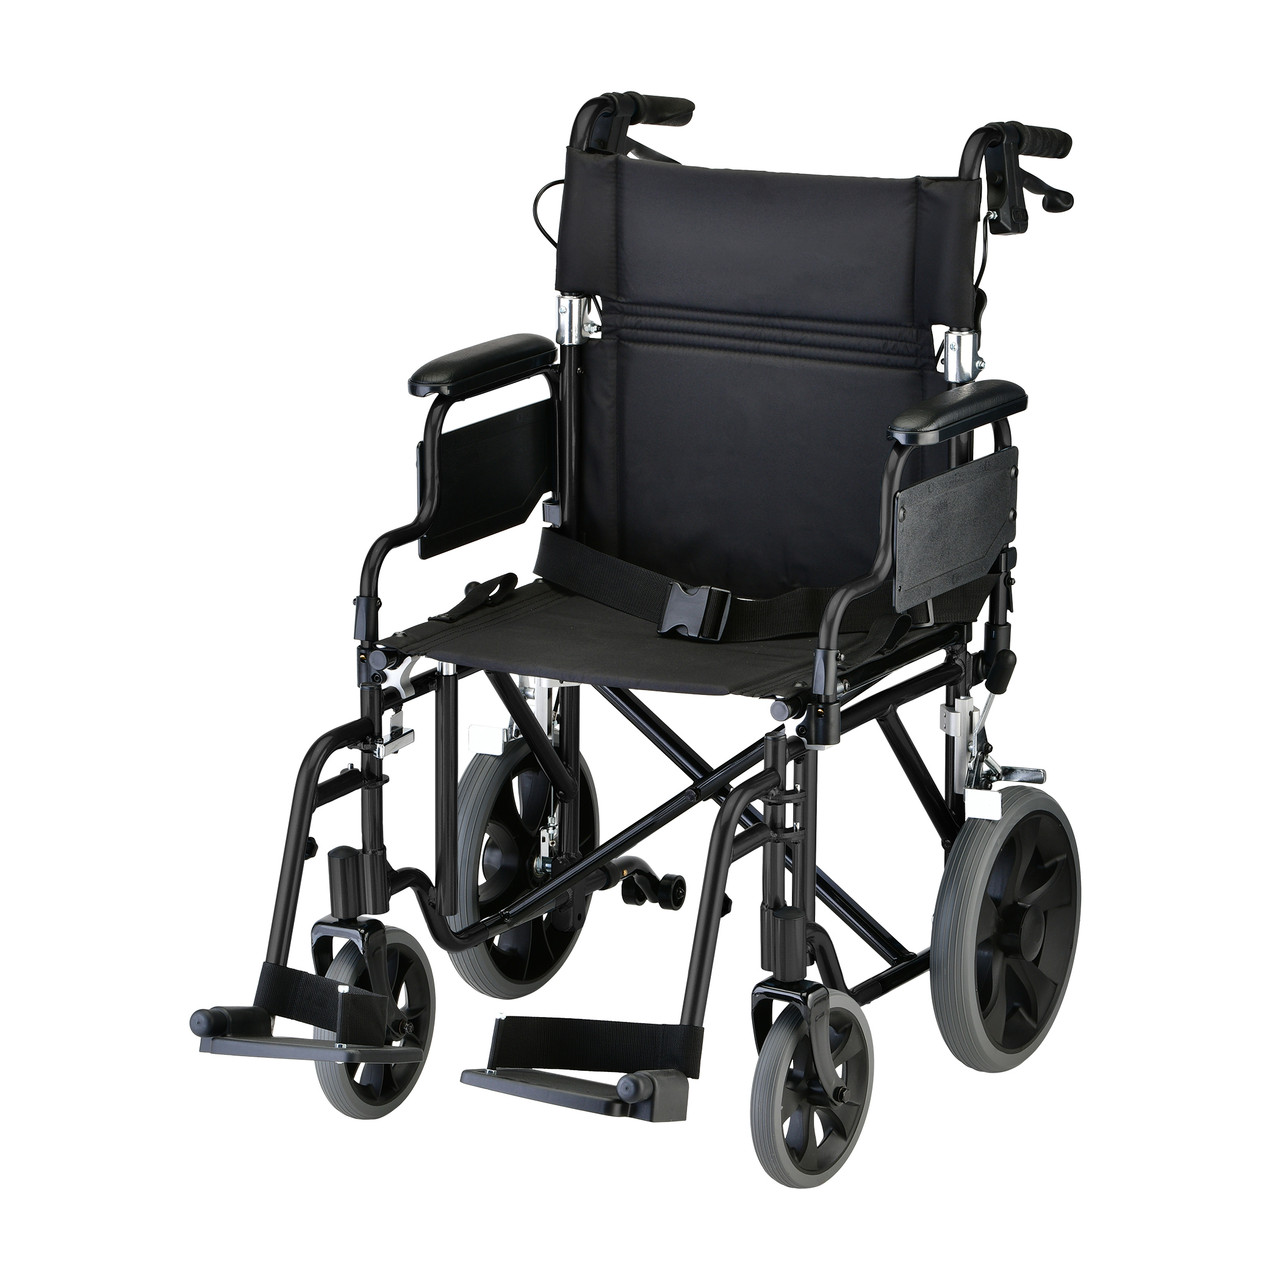 Nova 332 22 inch heavy duty transport chair